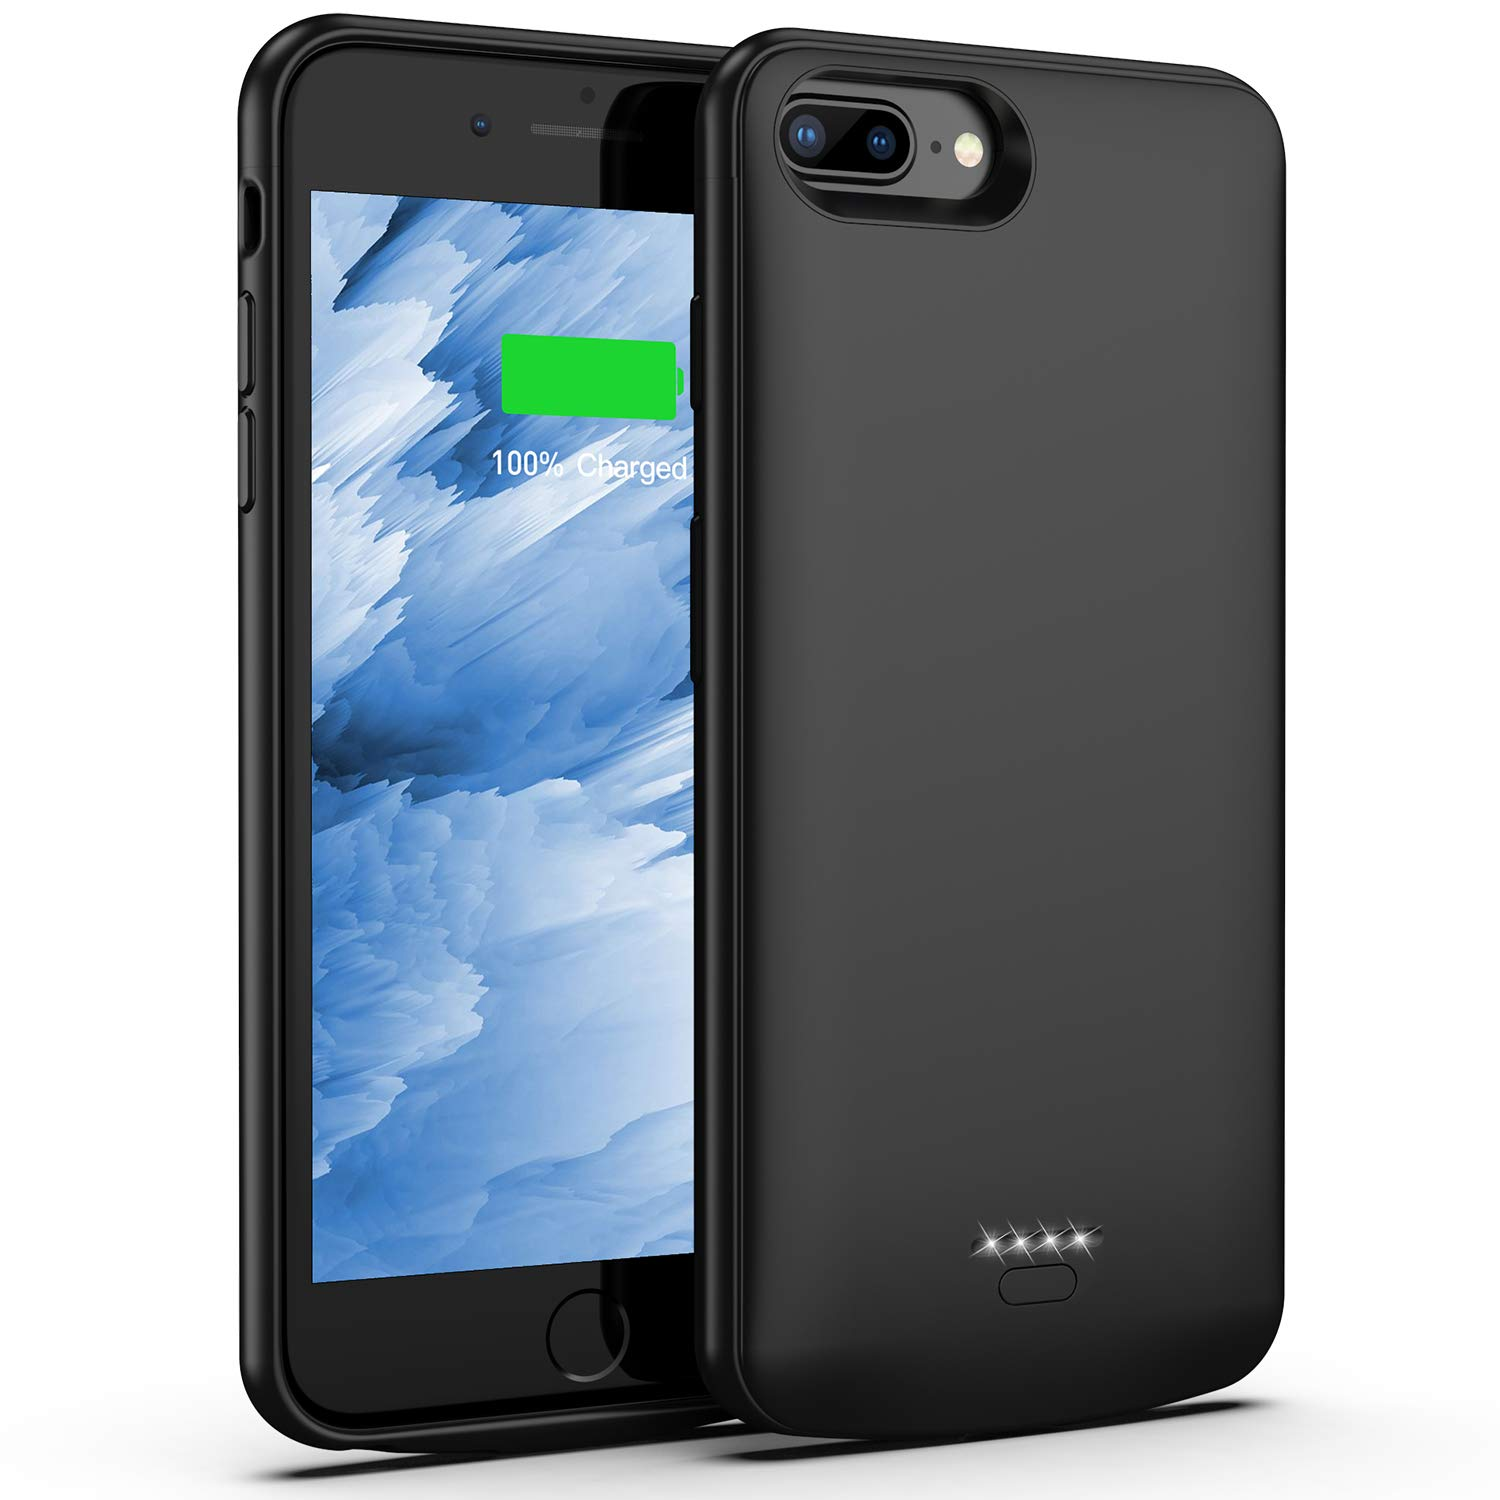 Funda Cargadora De 5500 Mah iPhone 8 Plus Y 7 Plus (xmp)